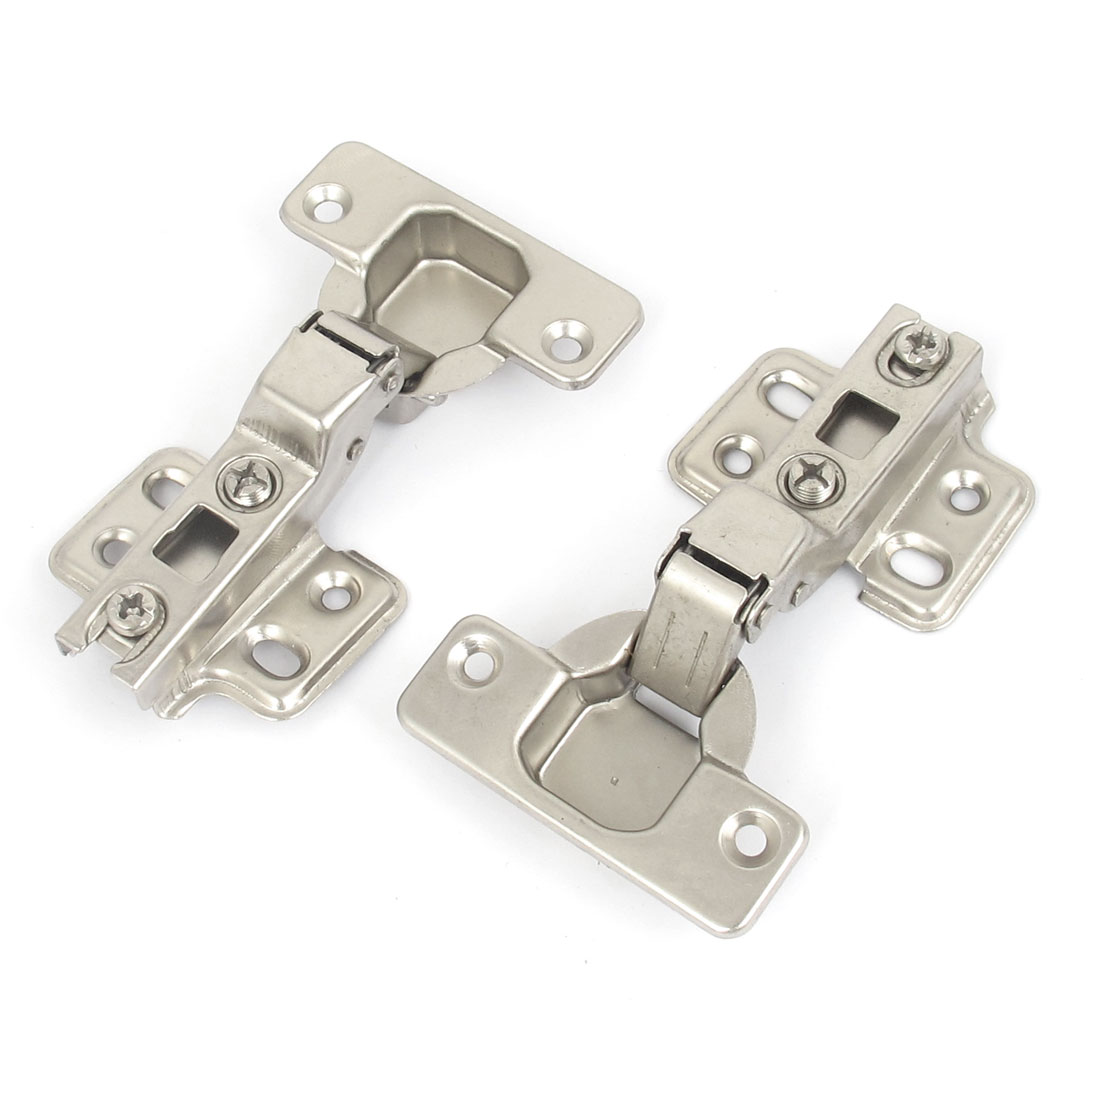 "Kitchen Cabinet Hydraulic Self Close Concealed Hinge Hardware 4"" Long 2pcs"